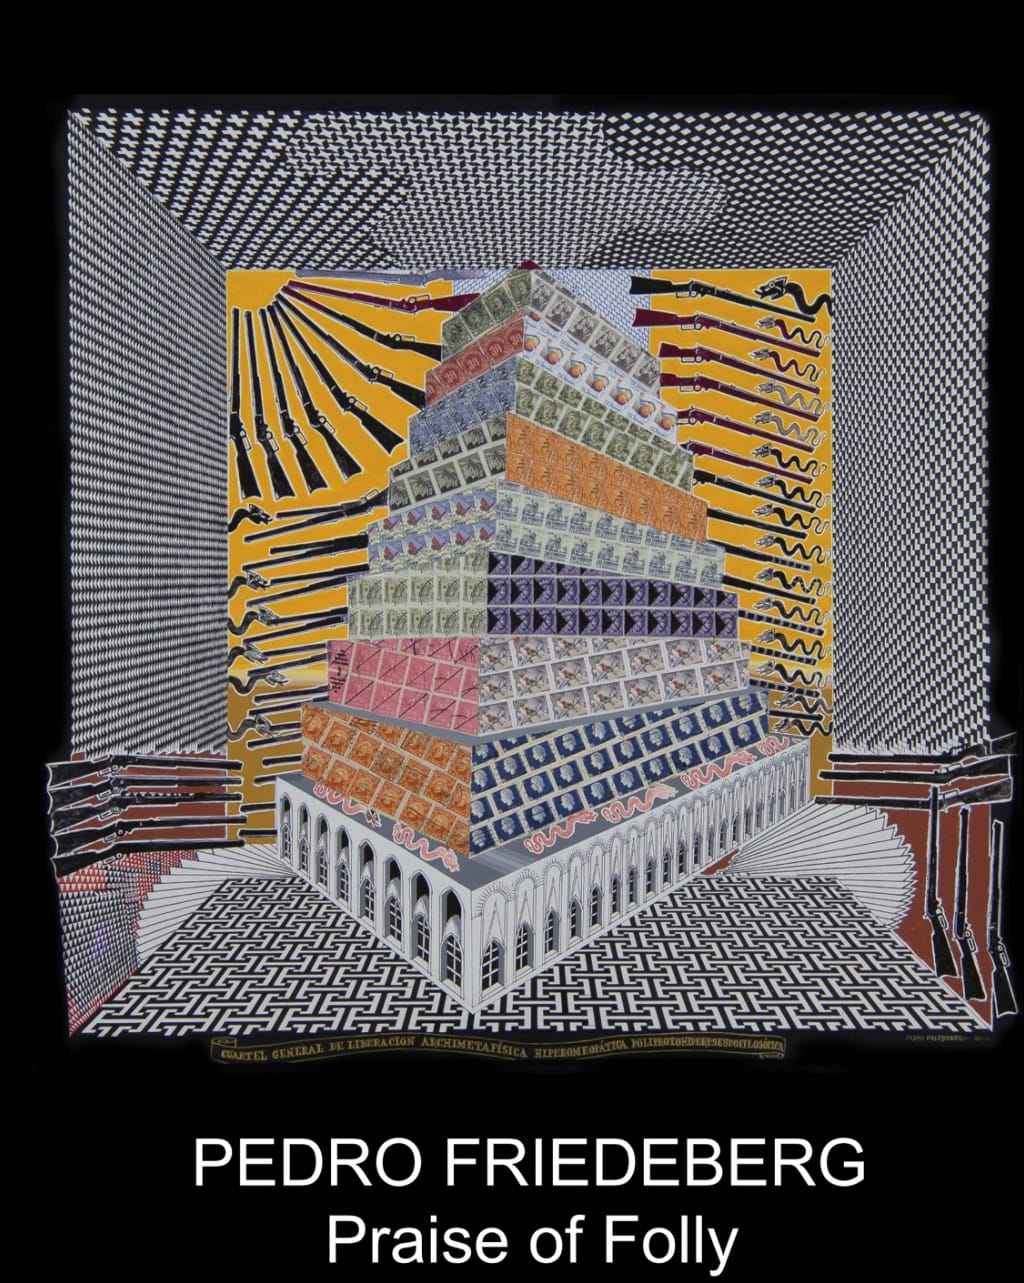 Pedro Friedeberg: Praise of Folly